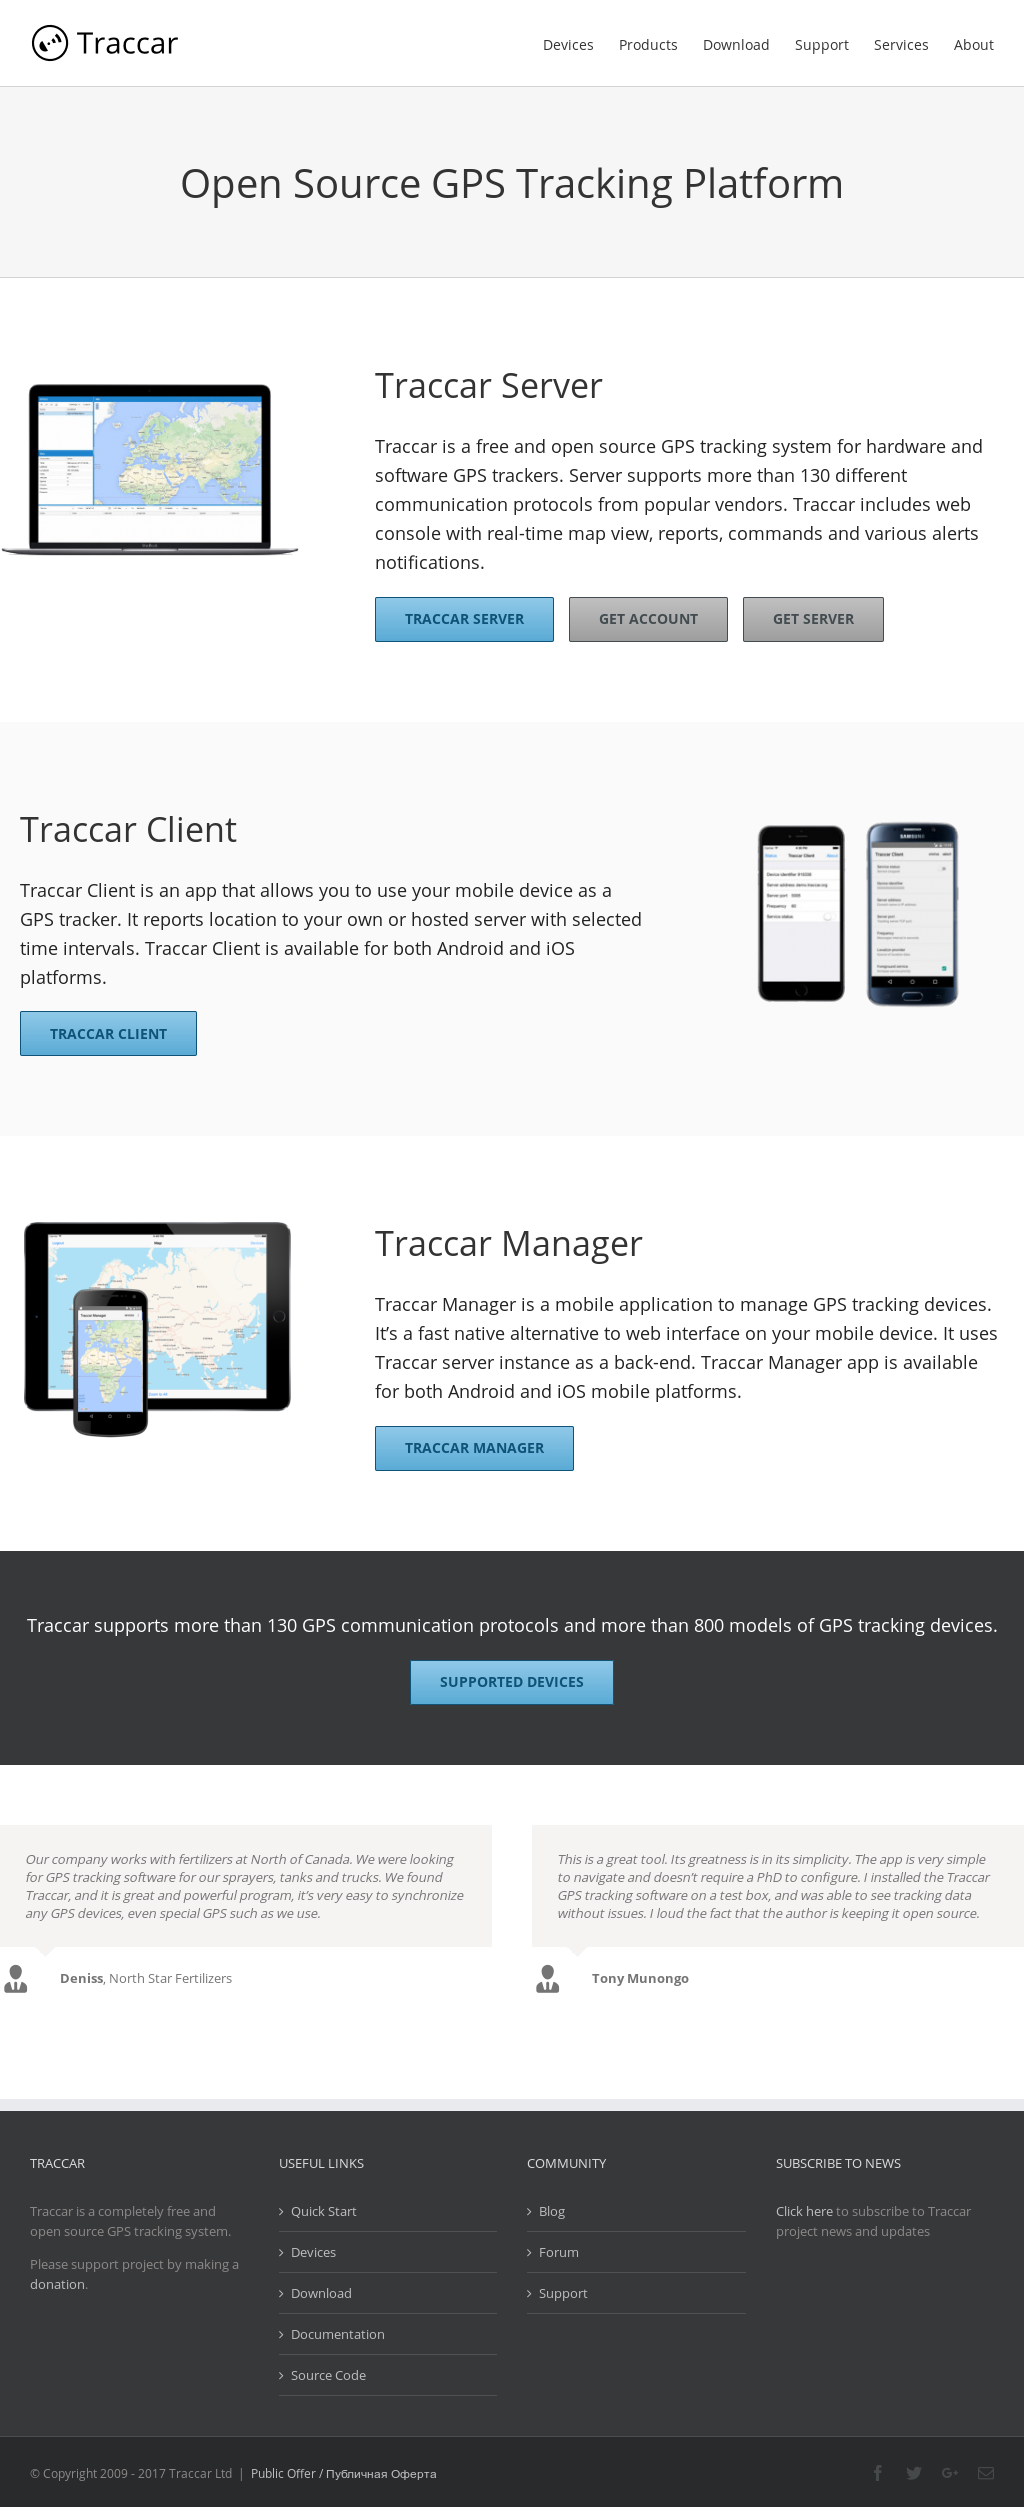 How Traccar Works